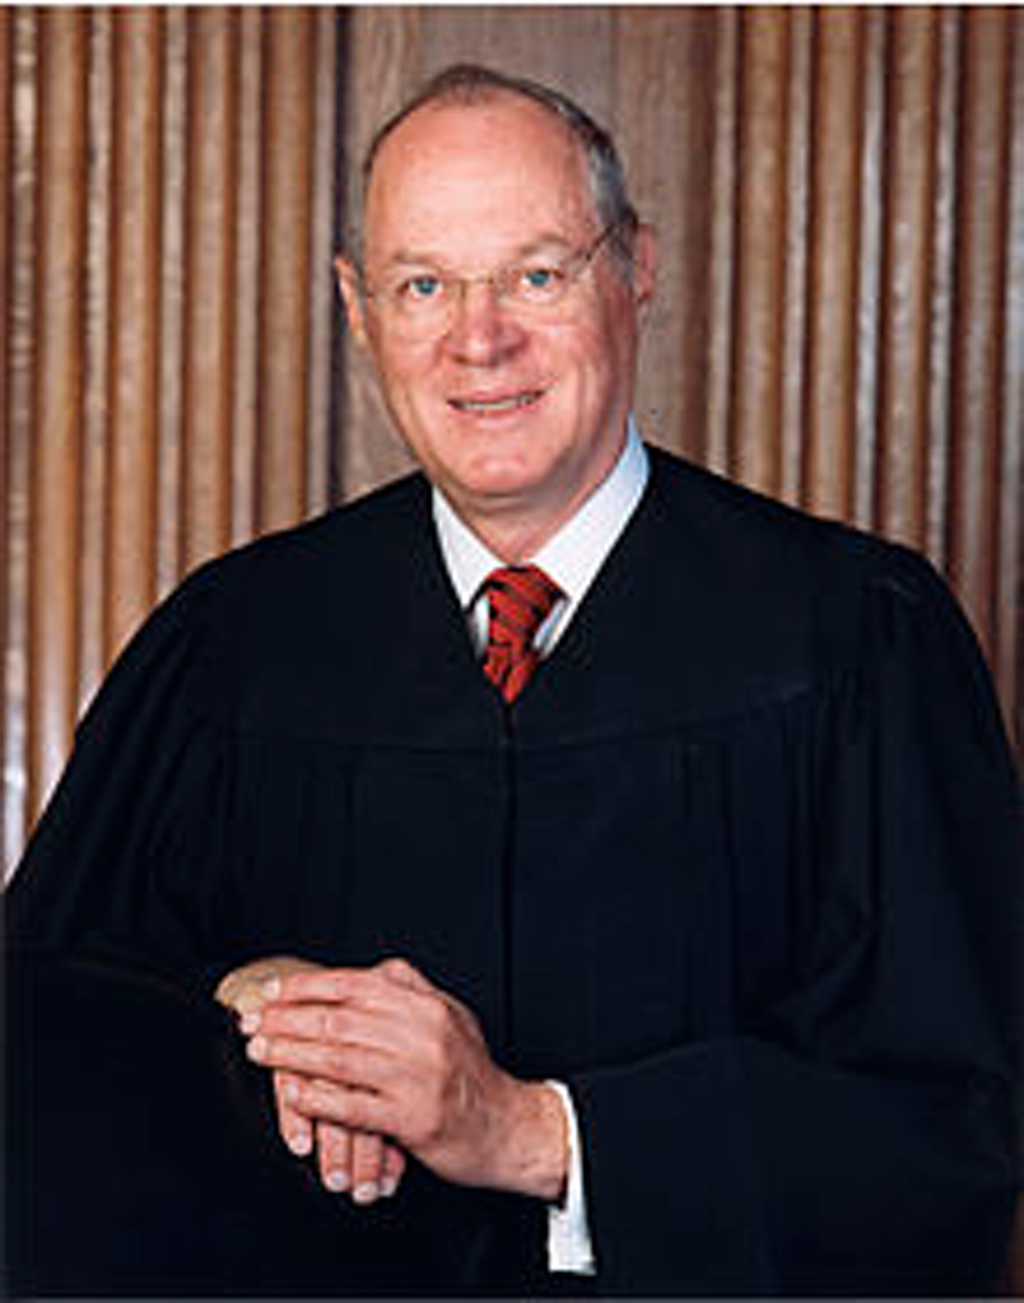 Justice Anthony Kennedy's Death Penalty Jurisprudence